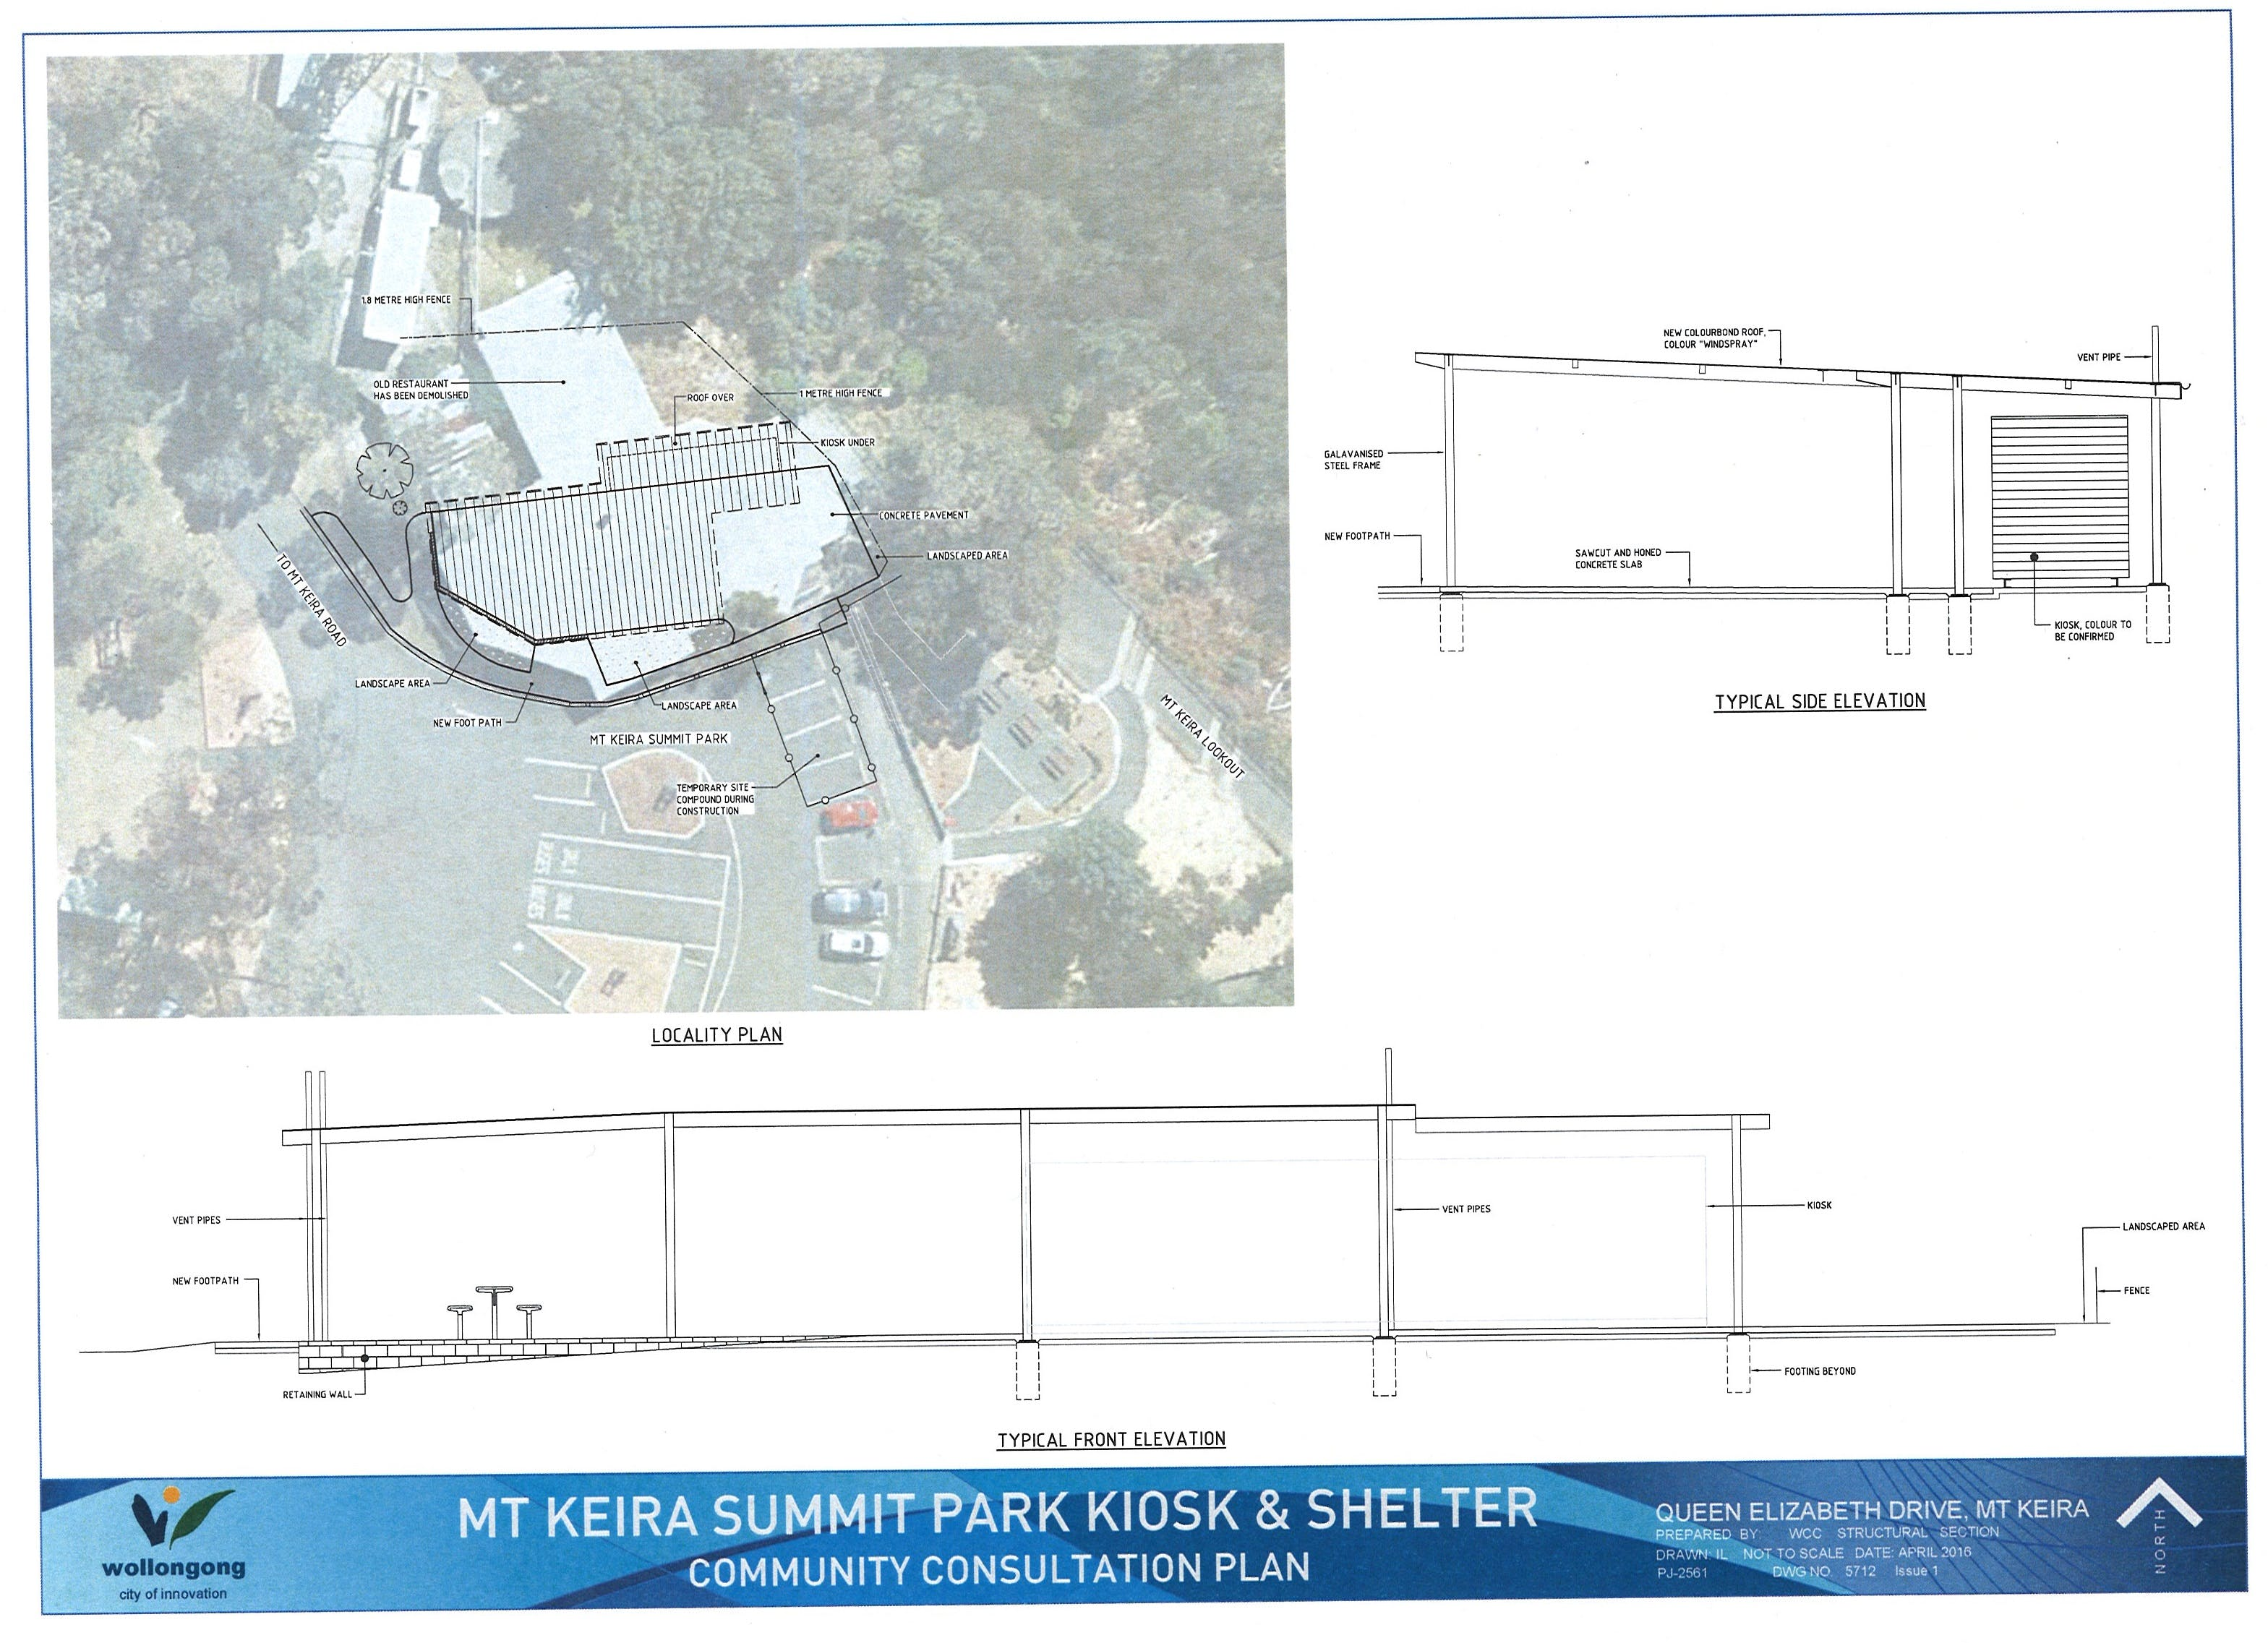 Kiosk And Shelter Plan